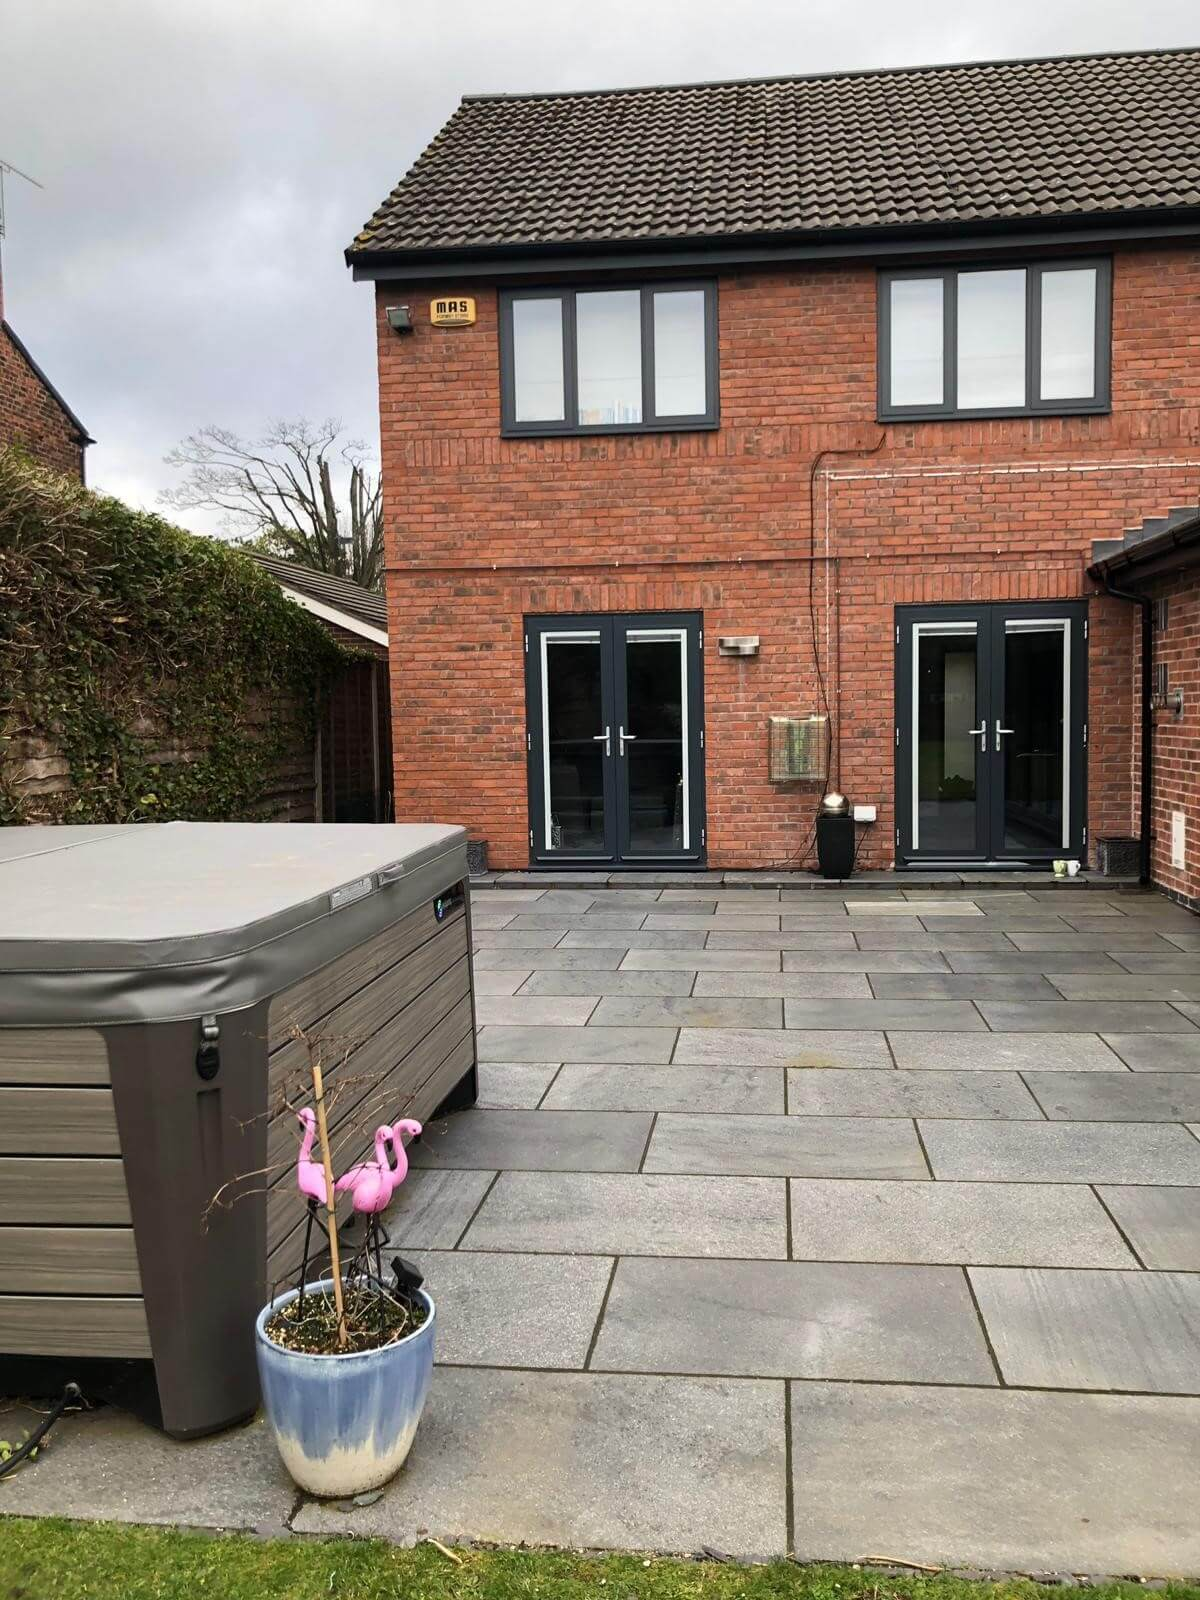 This image shows 2 new windows and 2 patio doors in aluminium and anthracite grey installed by Celsius Home Improvements at a home in Aughton, Ormskirk.